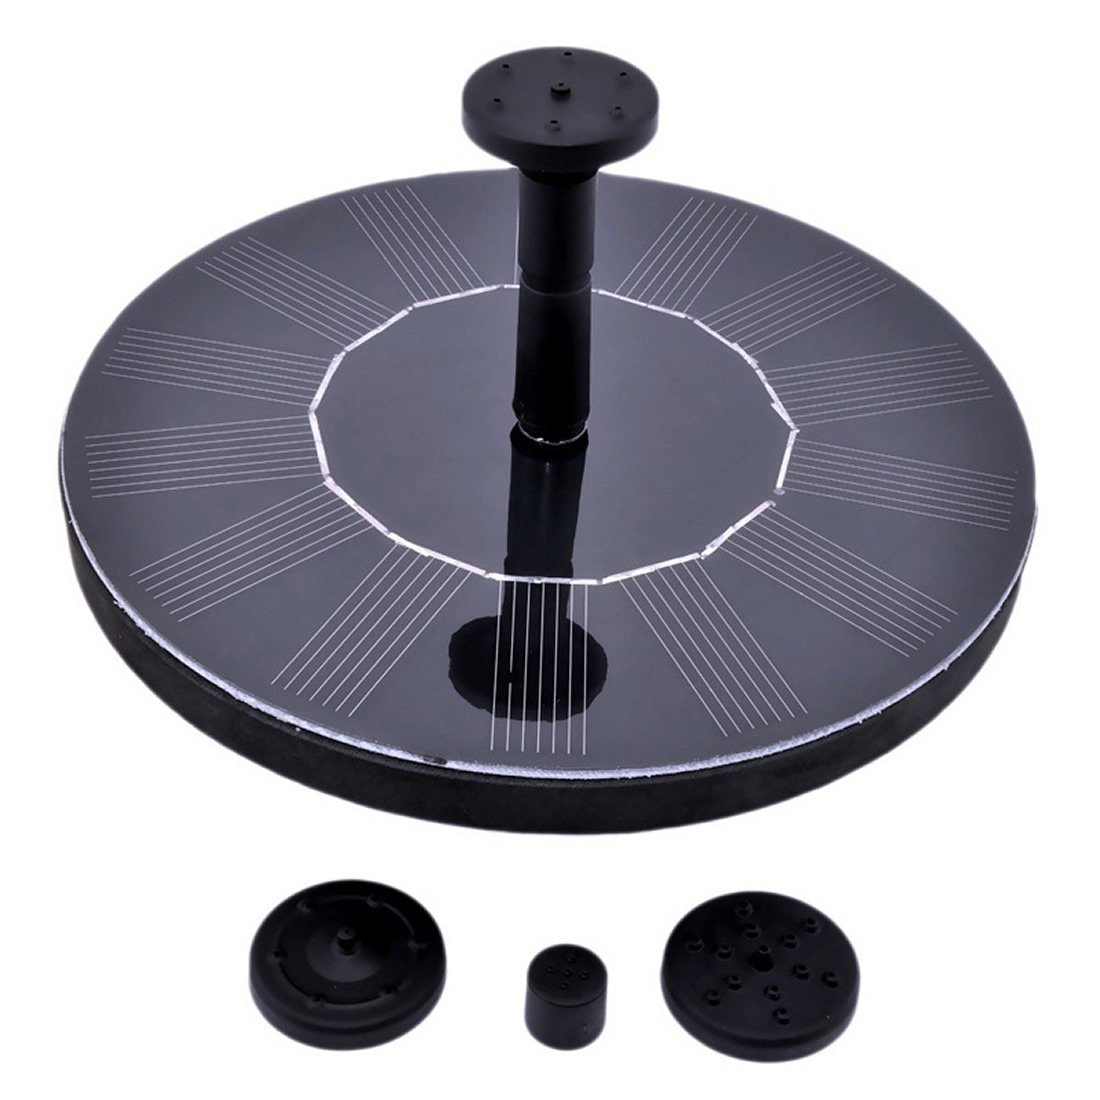 Mangetal Solar Fountain Pump, 4 Spray Heads Free-Standing 1.4W Solar Powered Outdoor Water Fountain Panel Bird Bath Pump for Garden Patio Pond Pool